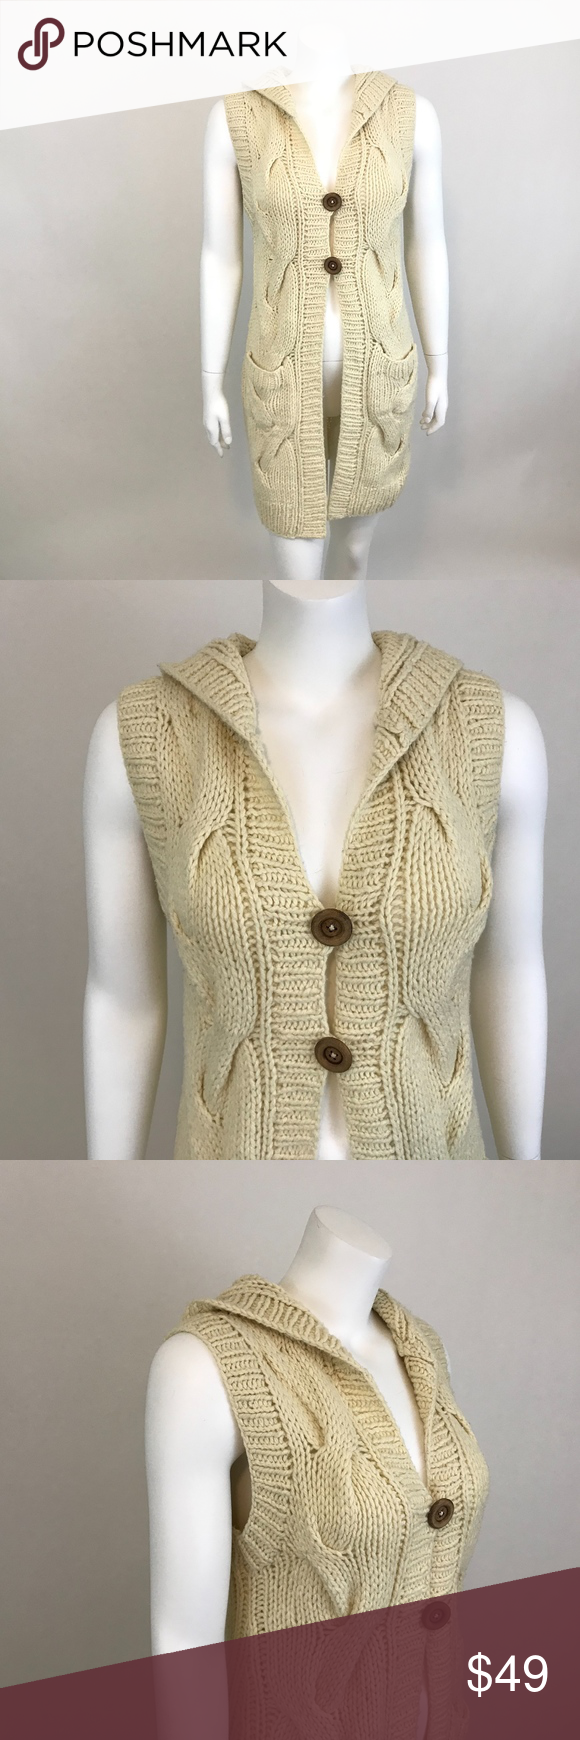 Free People Sweater Vest Cardigan Beige Cable Knit Beige Cardigan Sweater Vest Cardigan Vest